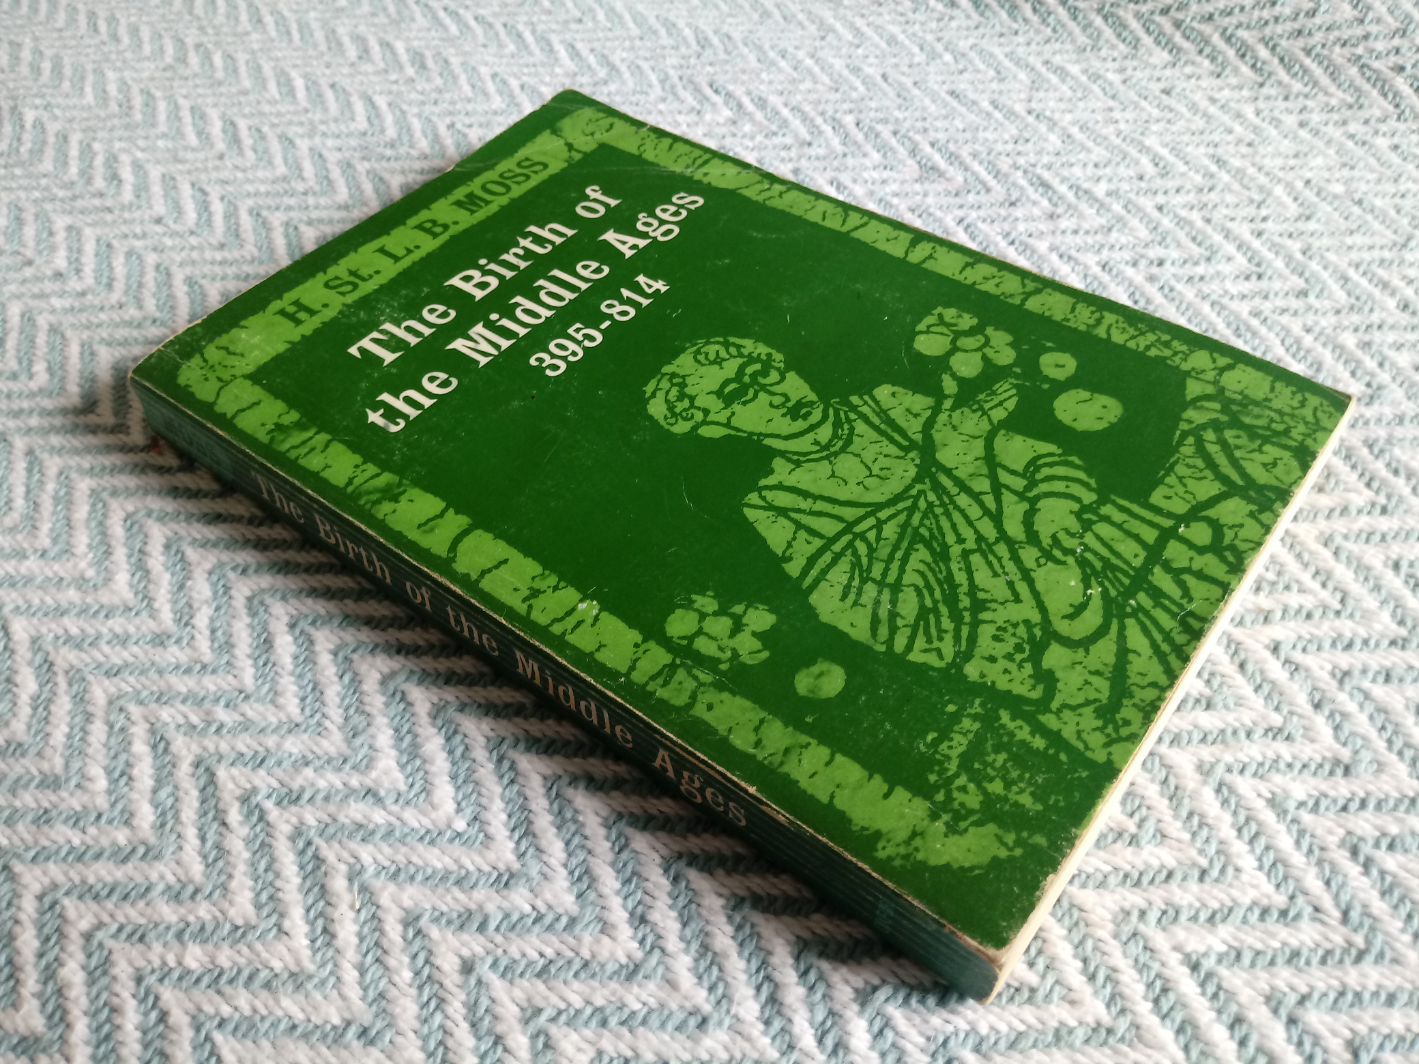 The Birth Of The Middle Ages 395-814 by H. St. L. B. Moss softback book 291 pages inscribed on title